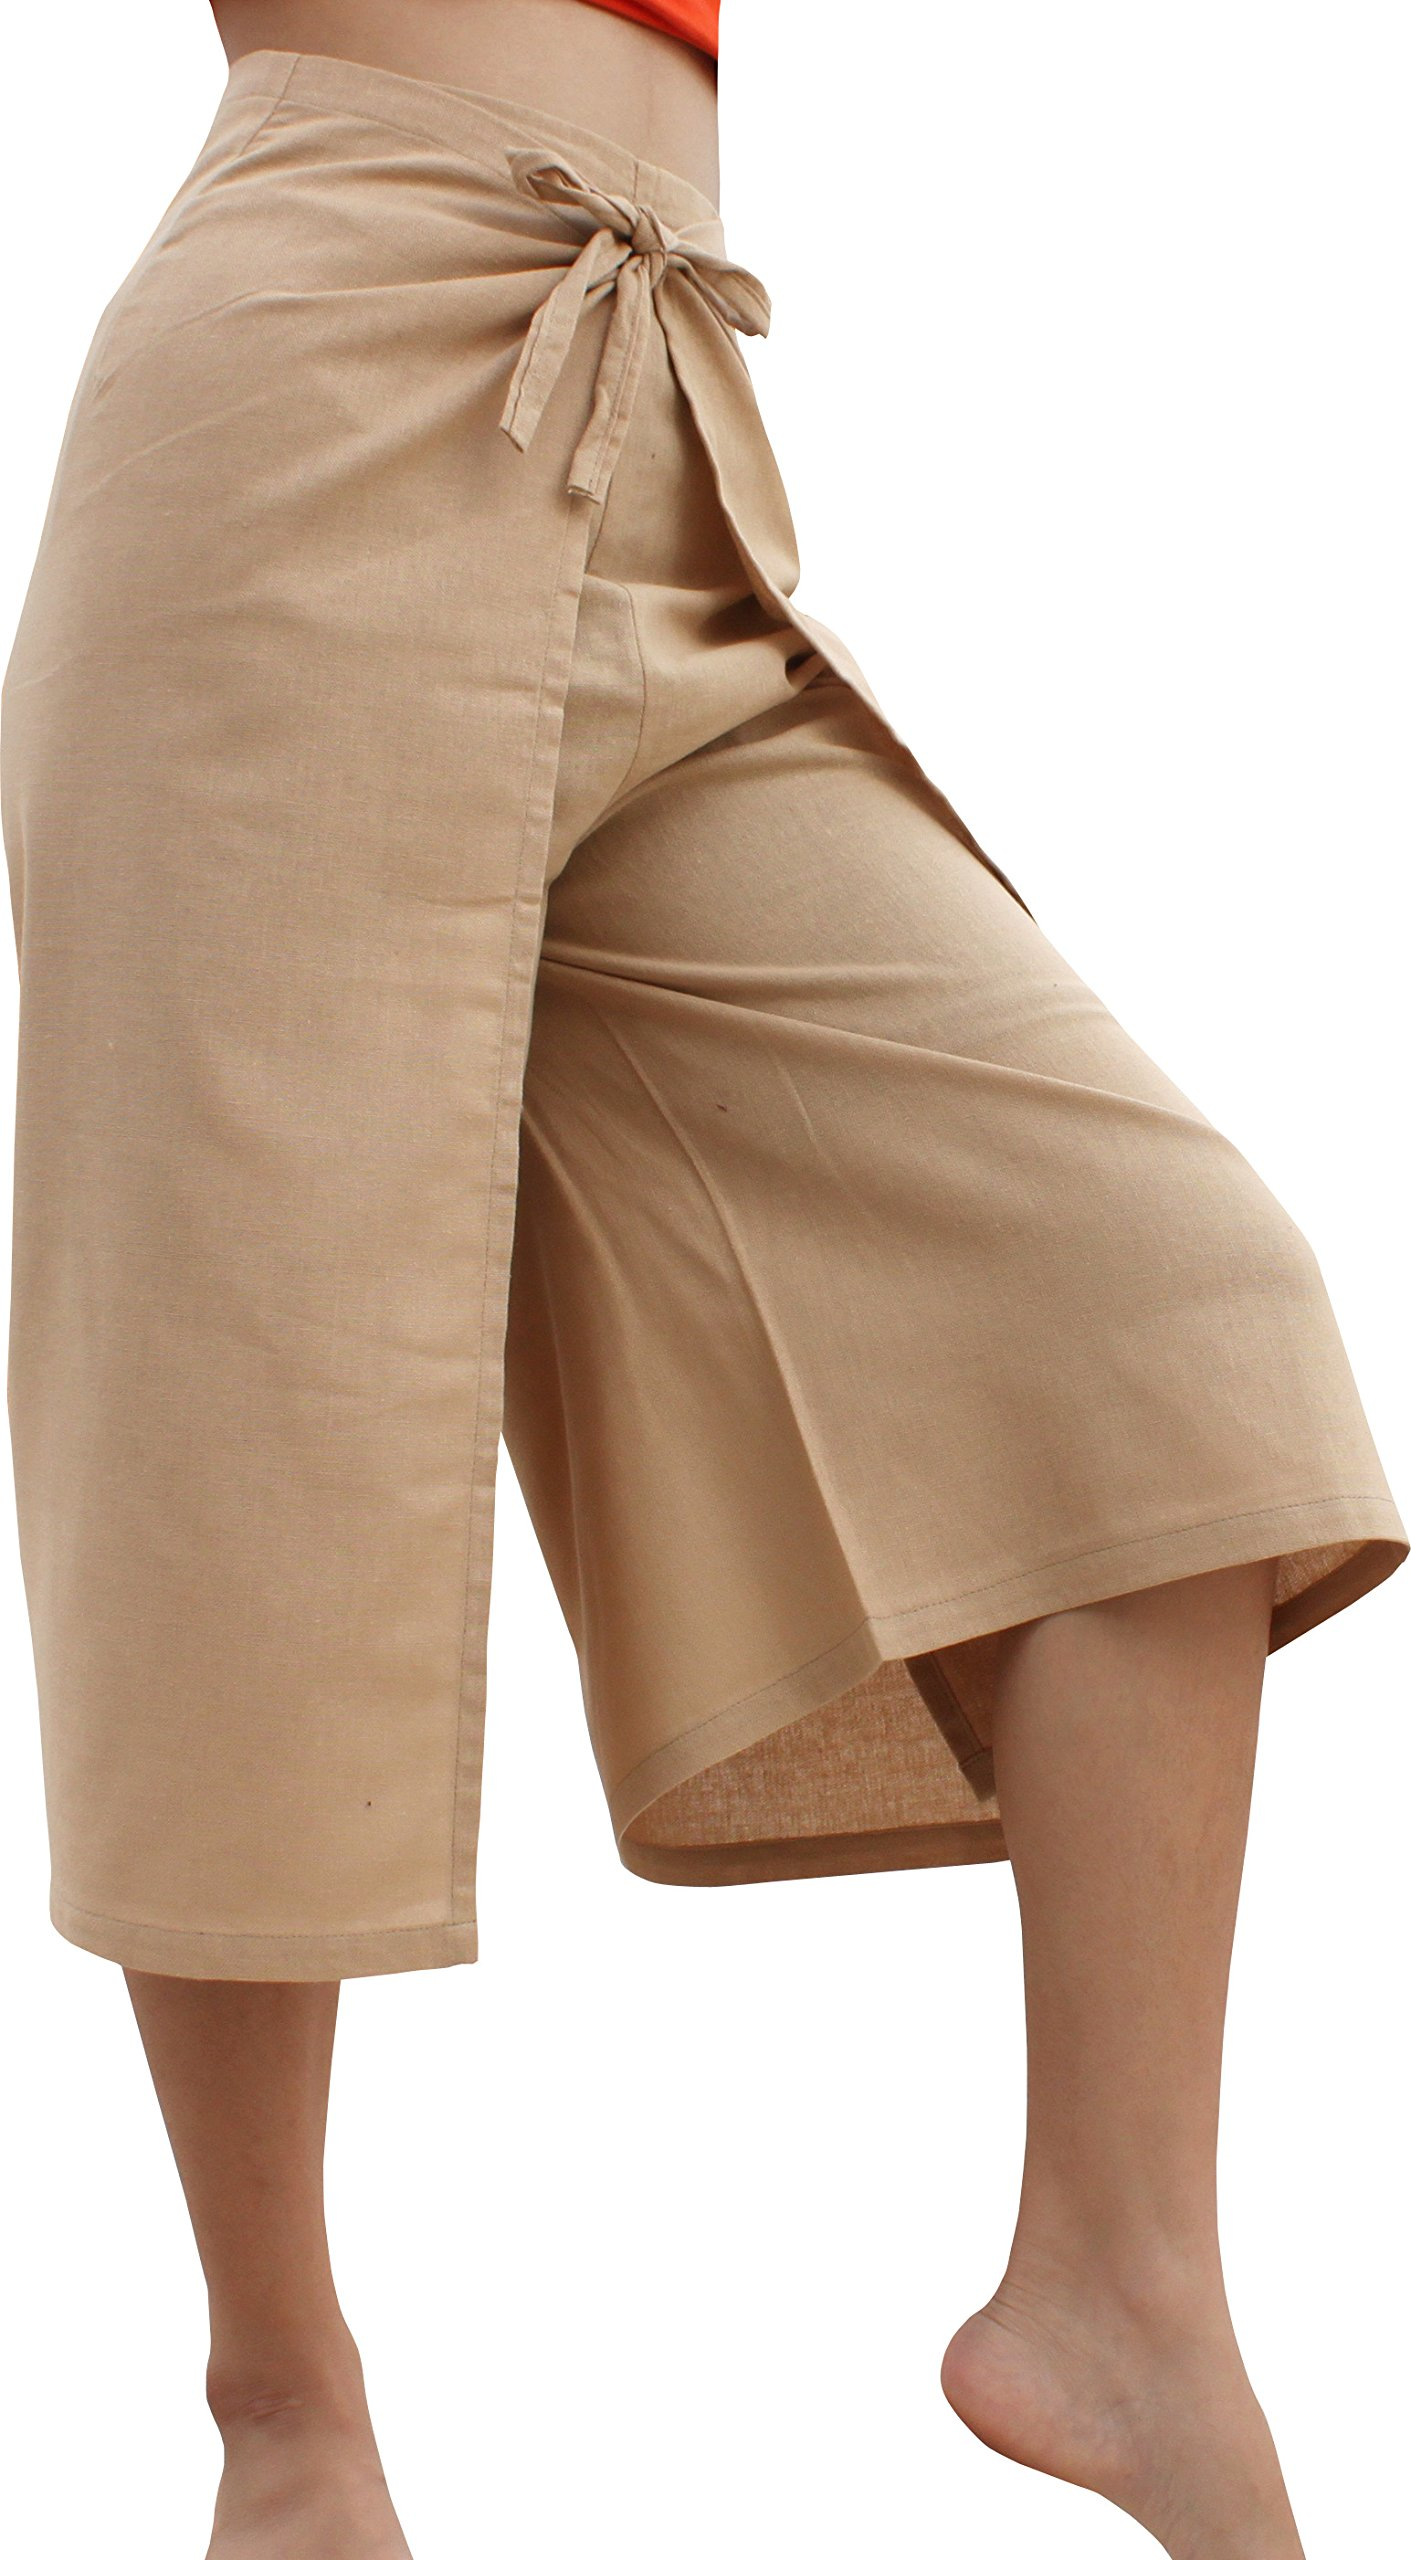 RaanPahMuang Drive In Wrap Pants In Summer Plain Mixed Cotton, Medium, Muang Bangkok Cotton - Tan Brown by RaanPahMuang